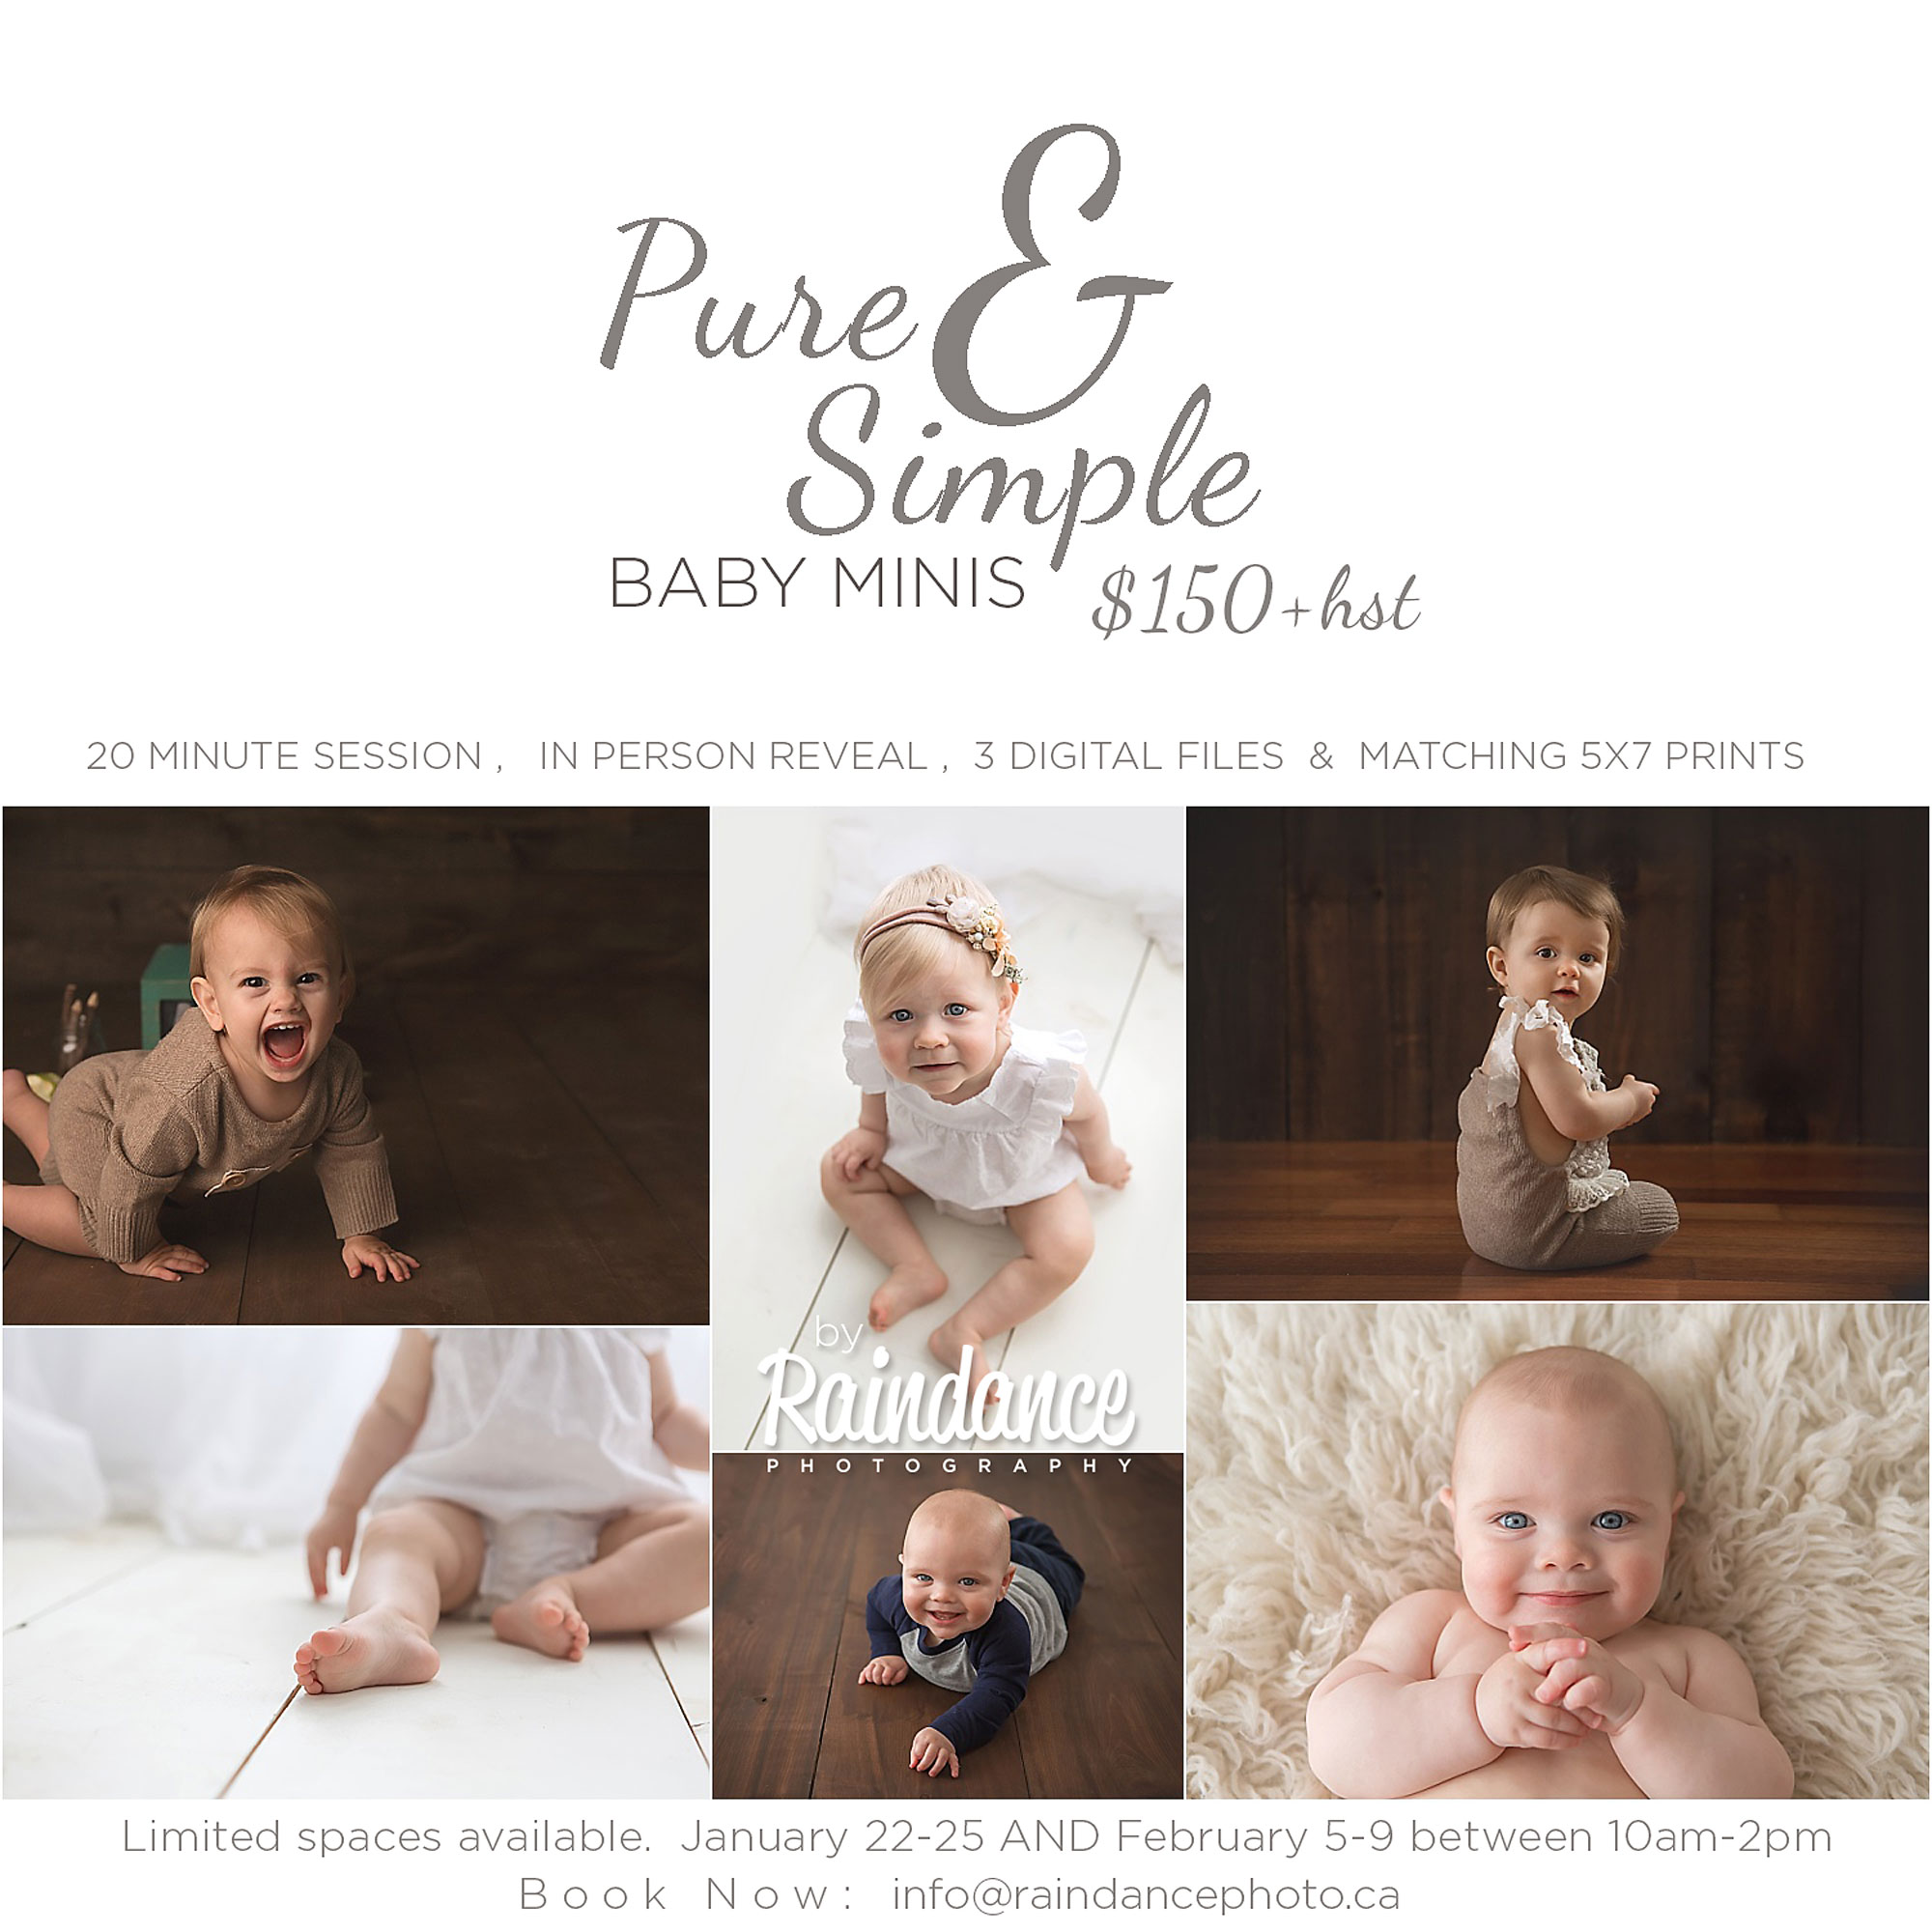 Pure-&-Simple-Baby-Minis-Marketing-AdWEB